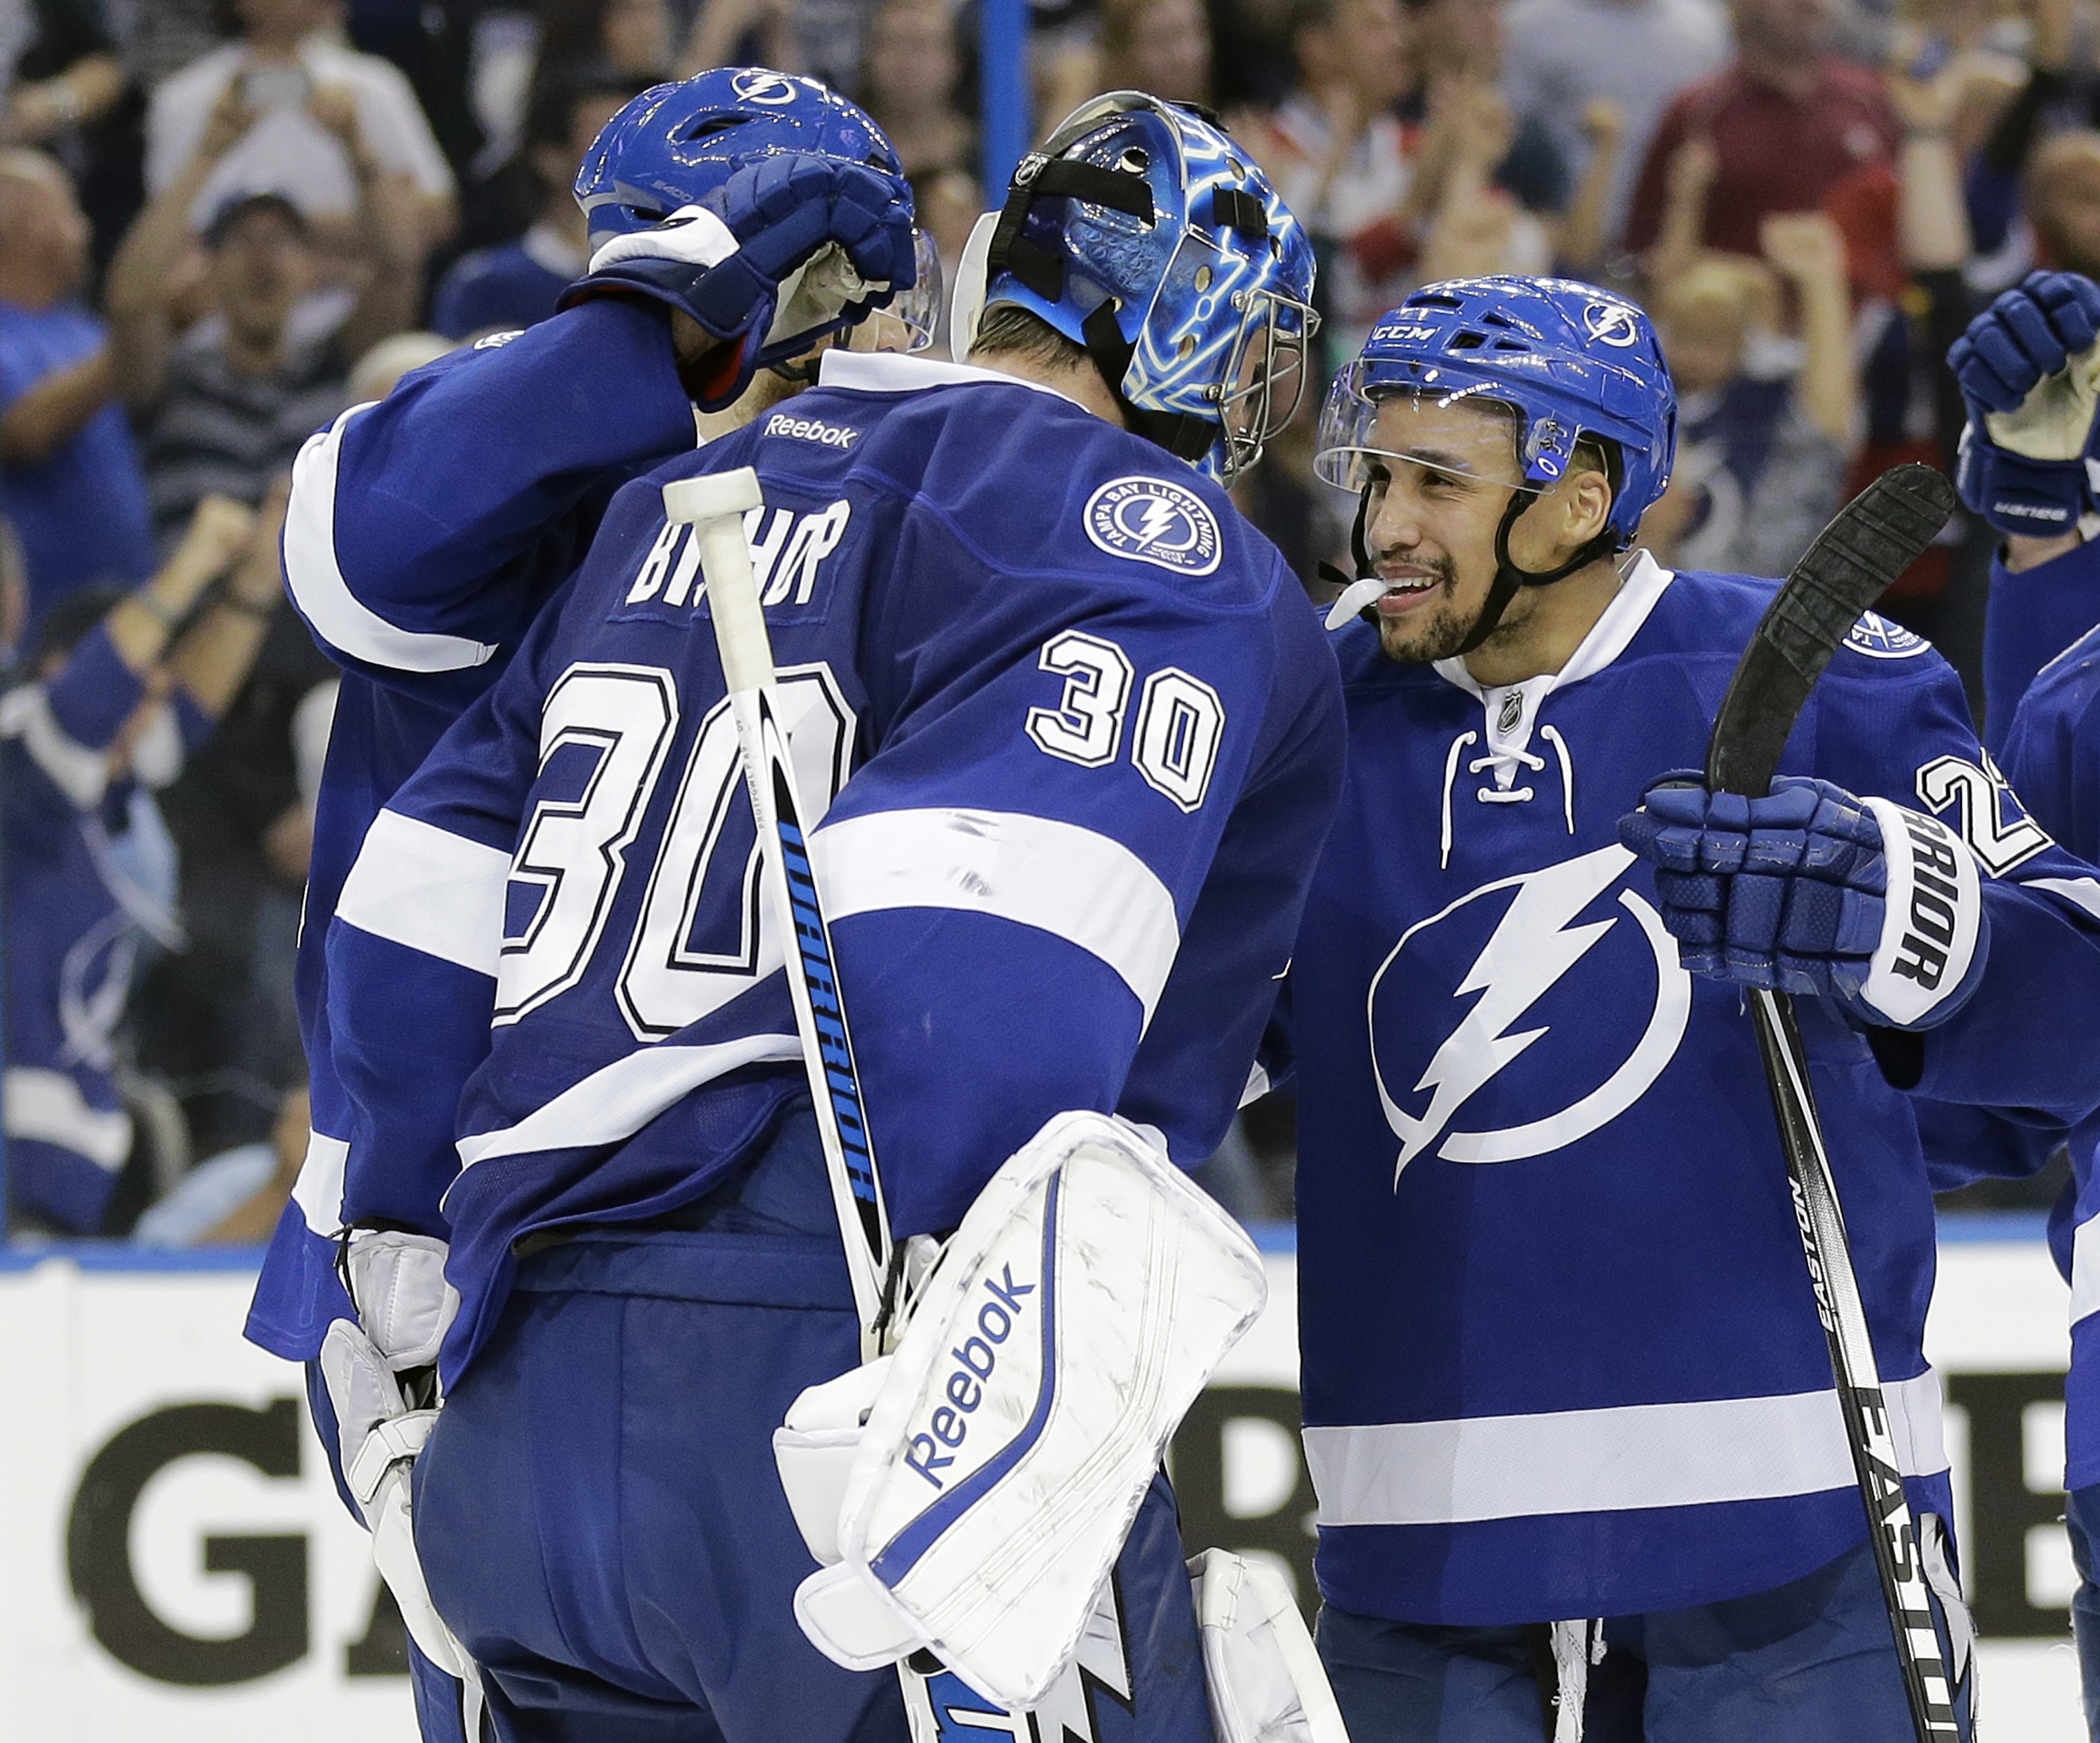 Tampa Bay Lightning goalie Ben Bishop (30) celebrates with right wing J.T. Brown (23) after the team defeated the Montreal Canadiens 4-1 during Game 6 of a second-round NHL Stanley Cup hockey playoff series Tuesday, May 12, 2015, in Tampa, Fla.  (AP Photo